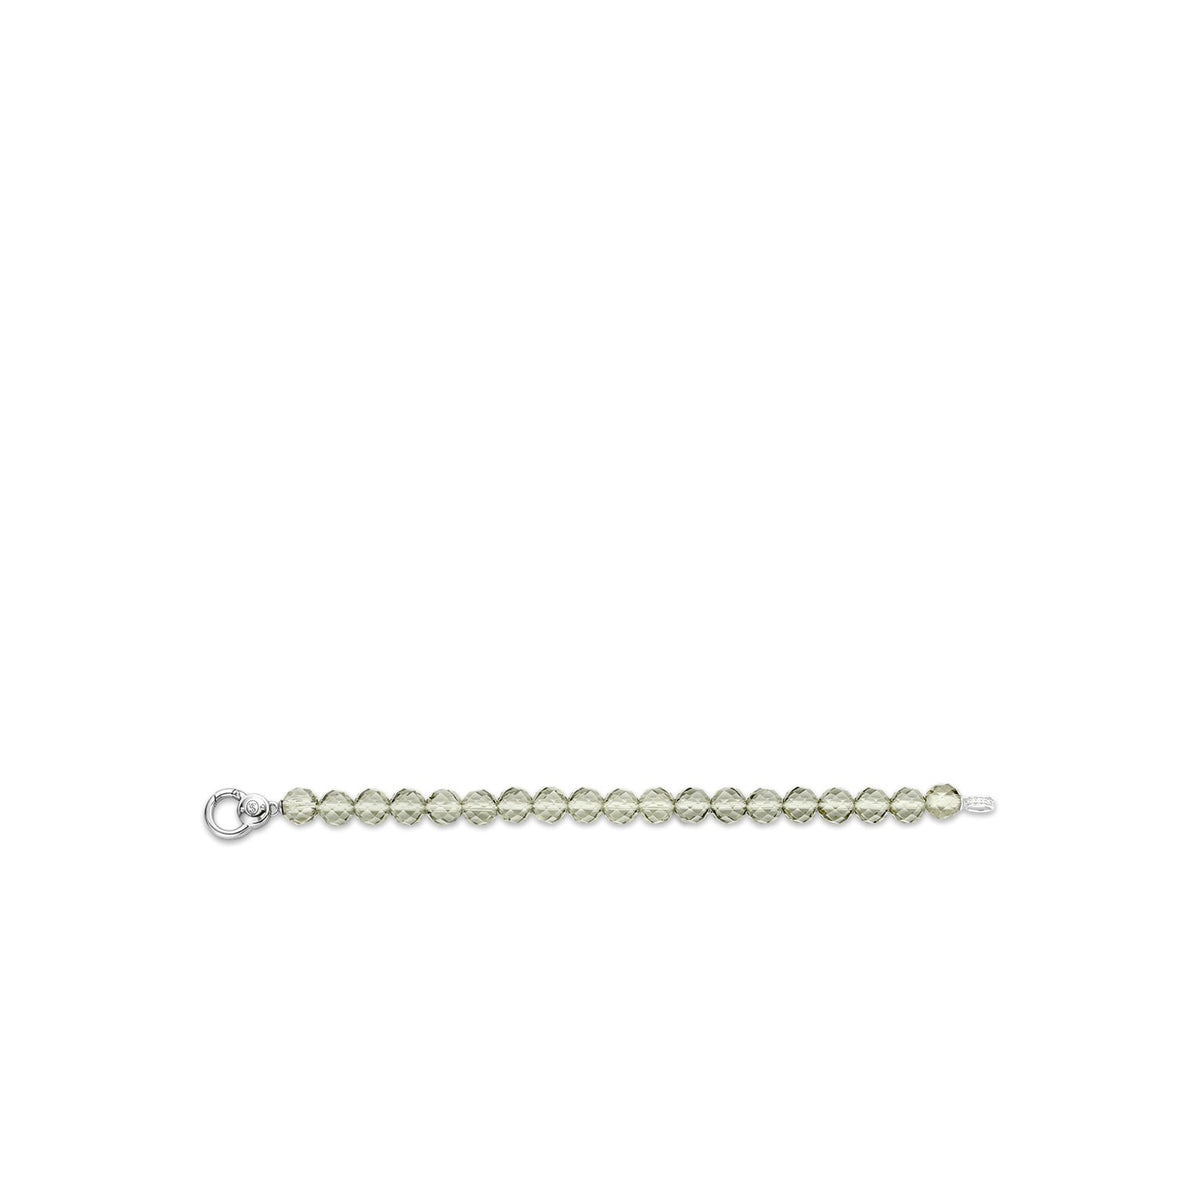 TI SENTO Sterling Silver Bracelet with Faceted Green Beads